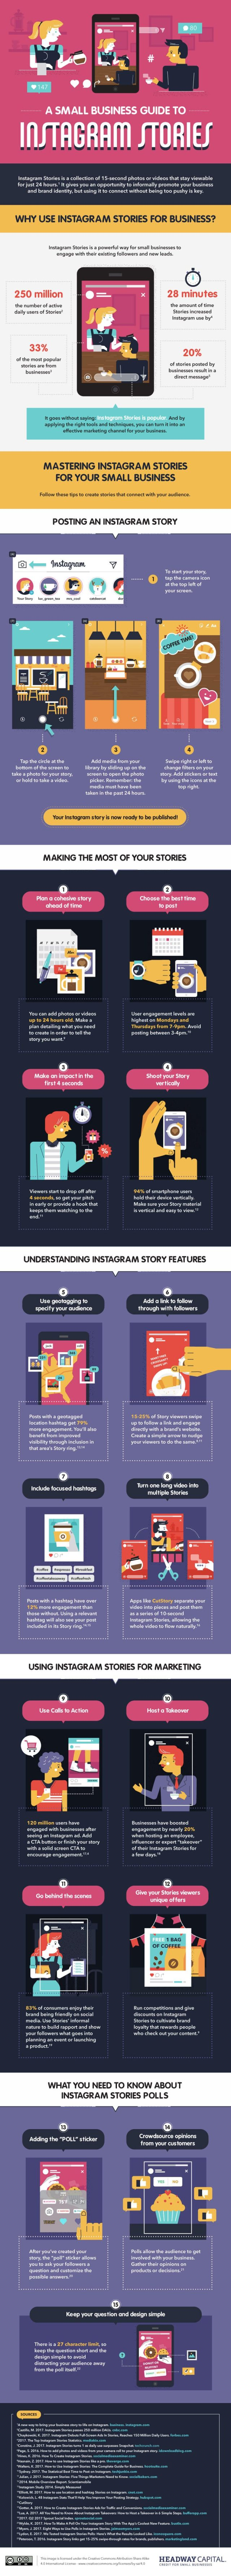 A Beginners Guide to Instagram Stories for Business Infographic